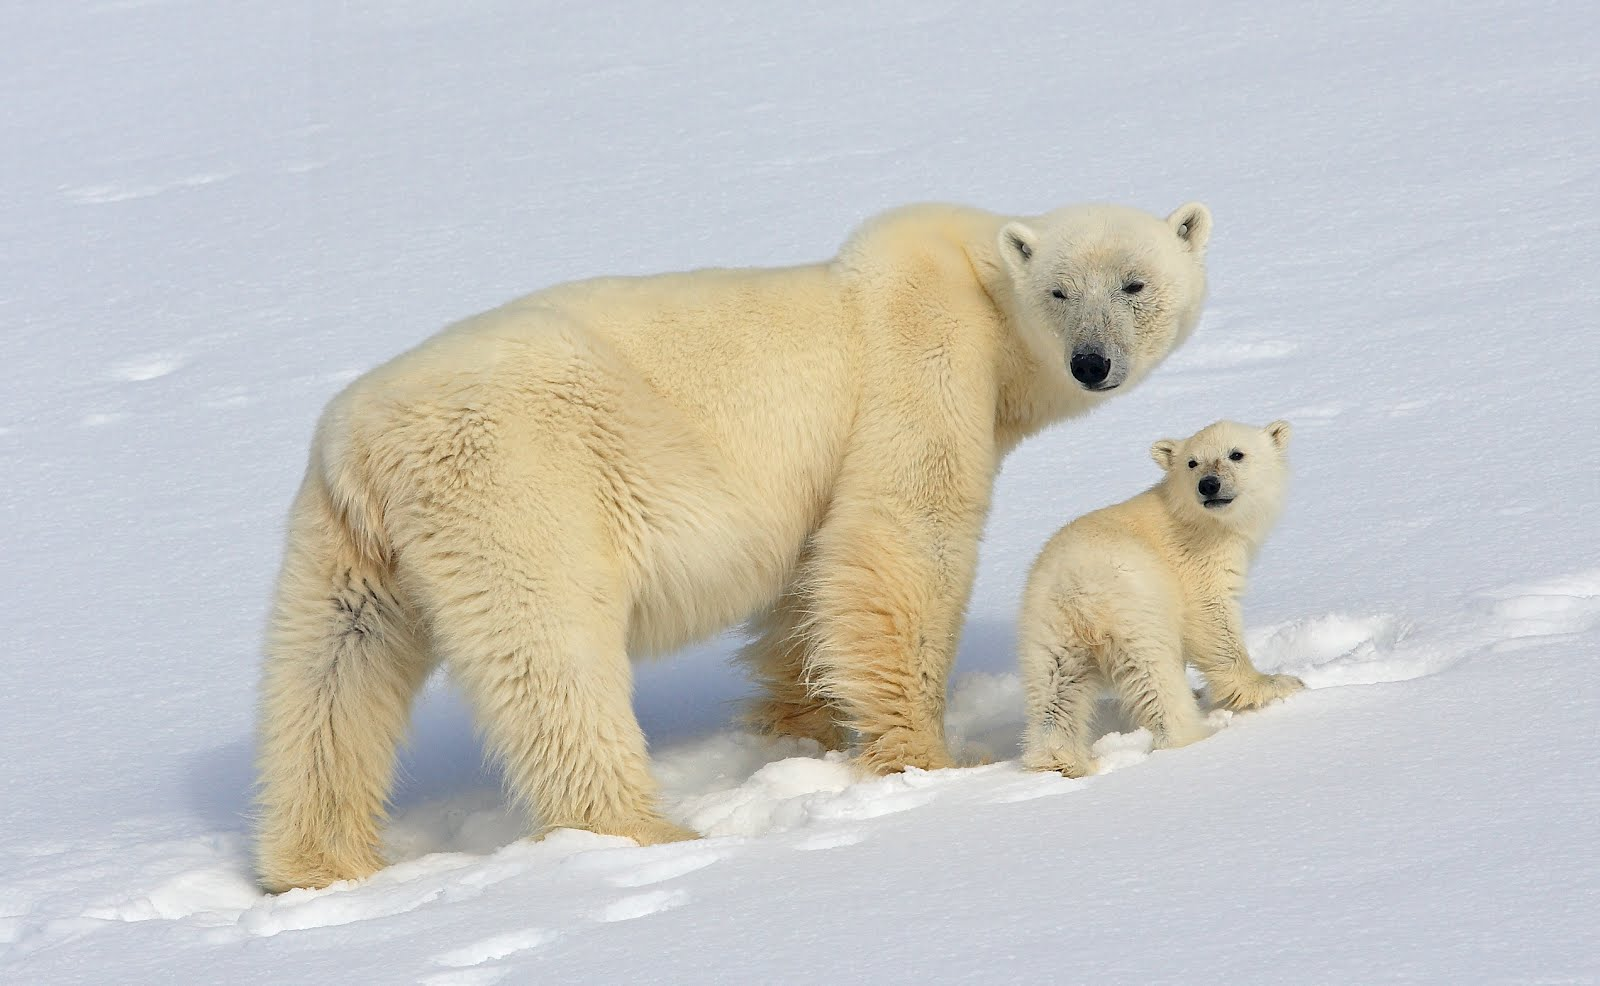 Debi Shearwater's Journeys: SVALBARD'S WILDLIFE: POLAR BEAR